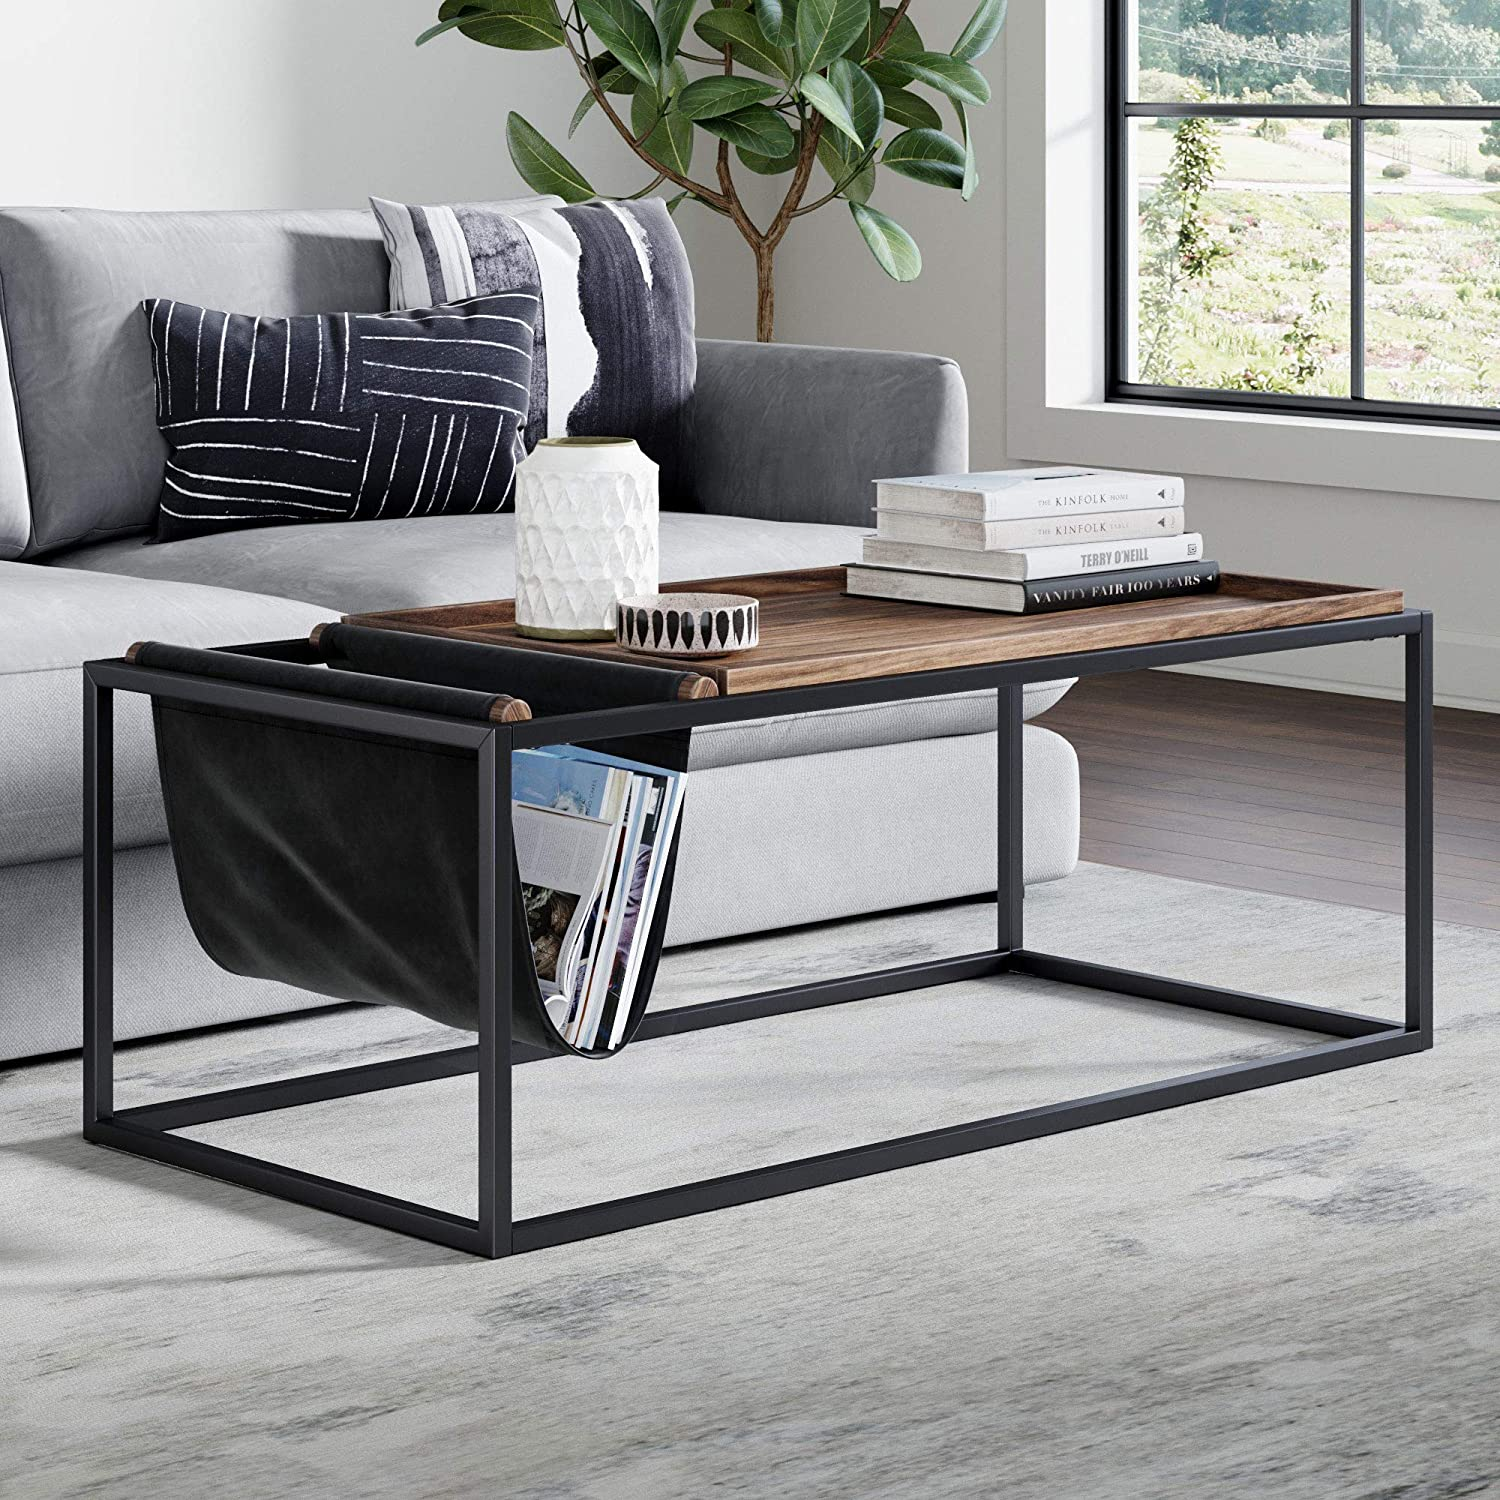 Nathan James 31401 Felix Modern Coffee Table with Wood Tray Top Vegan Leather Storage and Industrial Matte Steel Rectangle Metal Frame